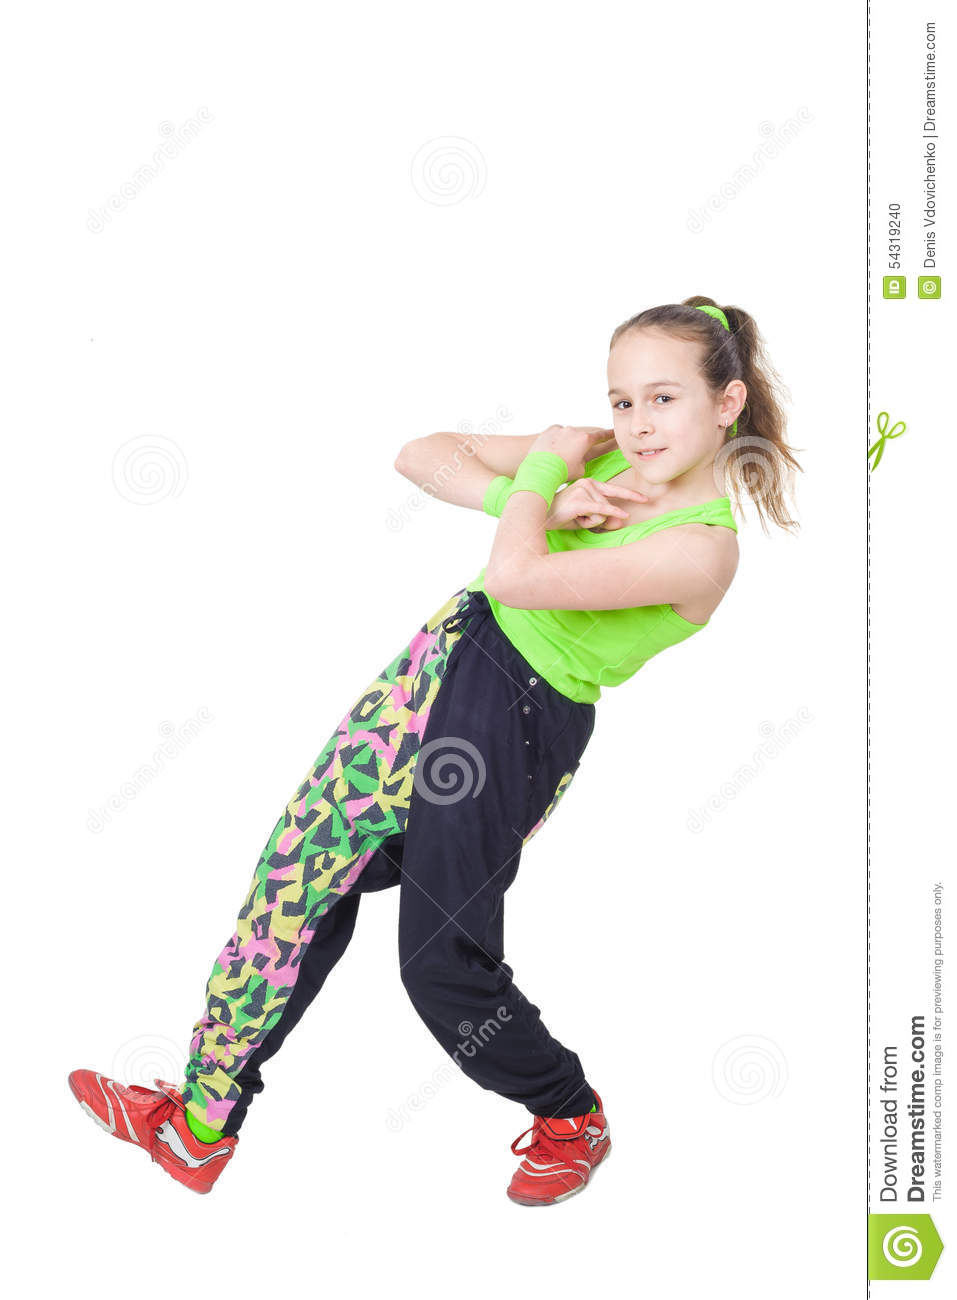 Populaire Happy Little Girl Dancing Hip-hop Stock Photo - Image: 54319240 KZ61